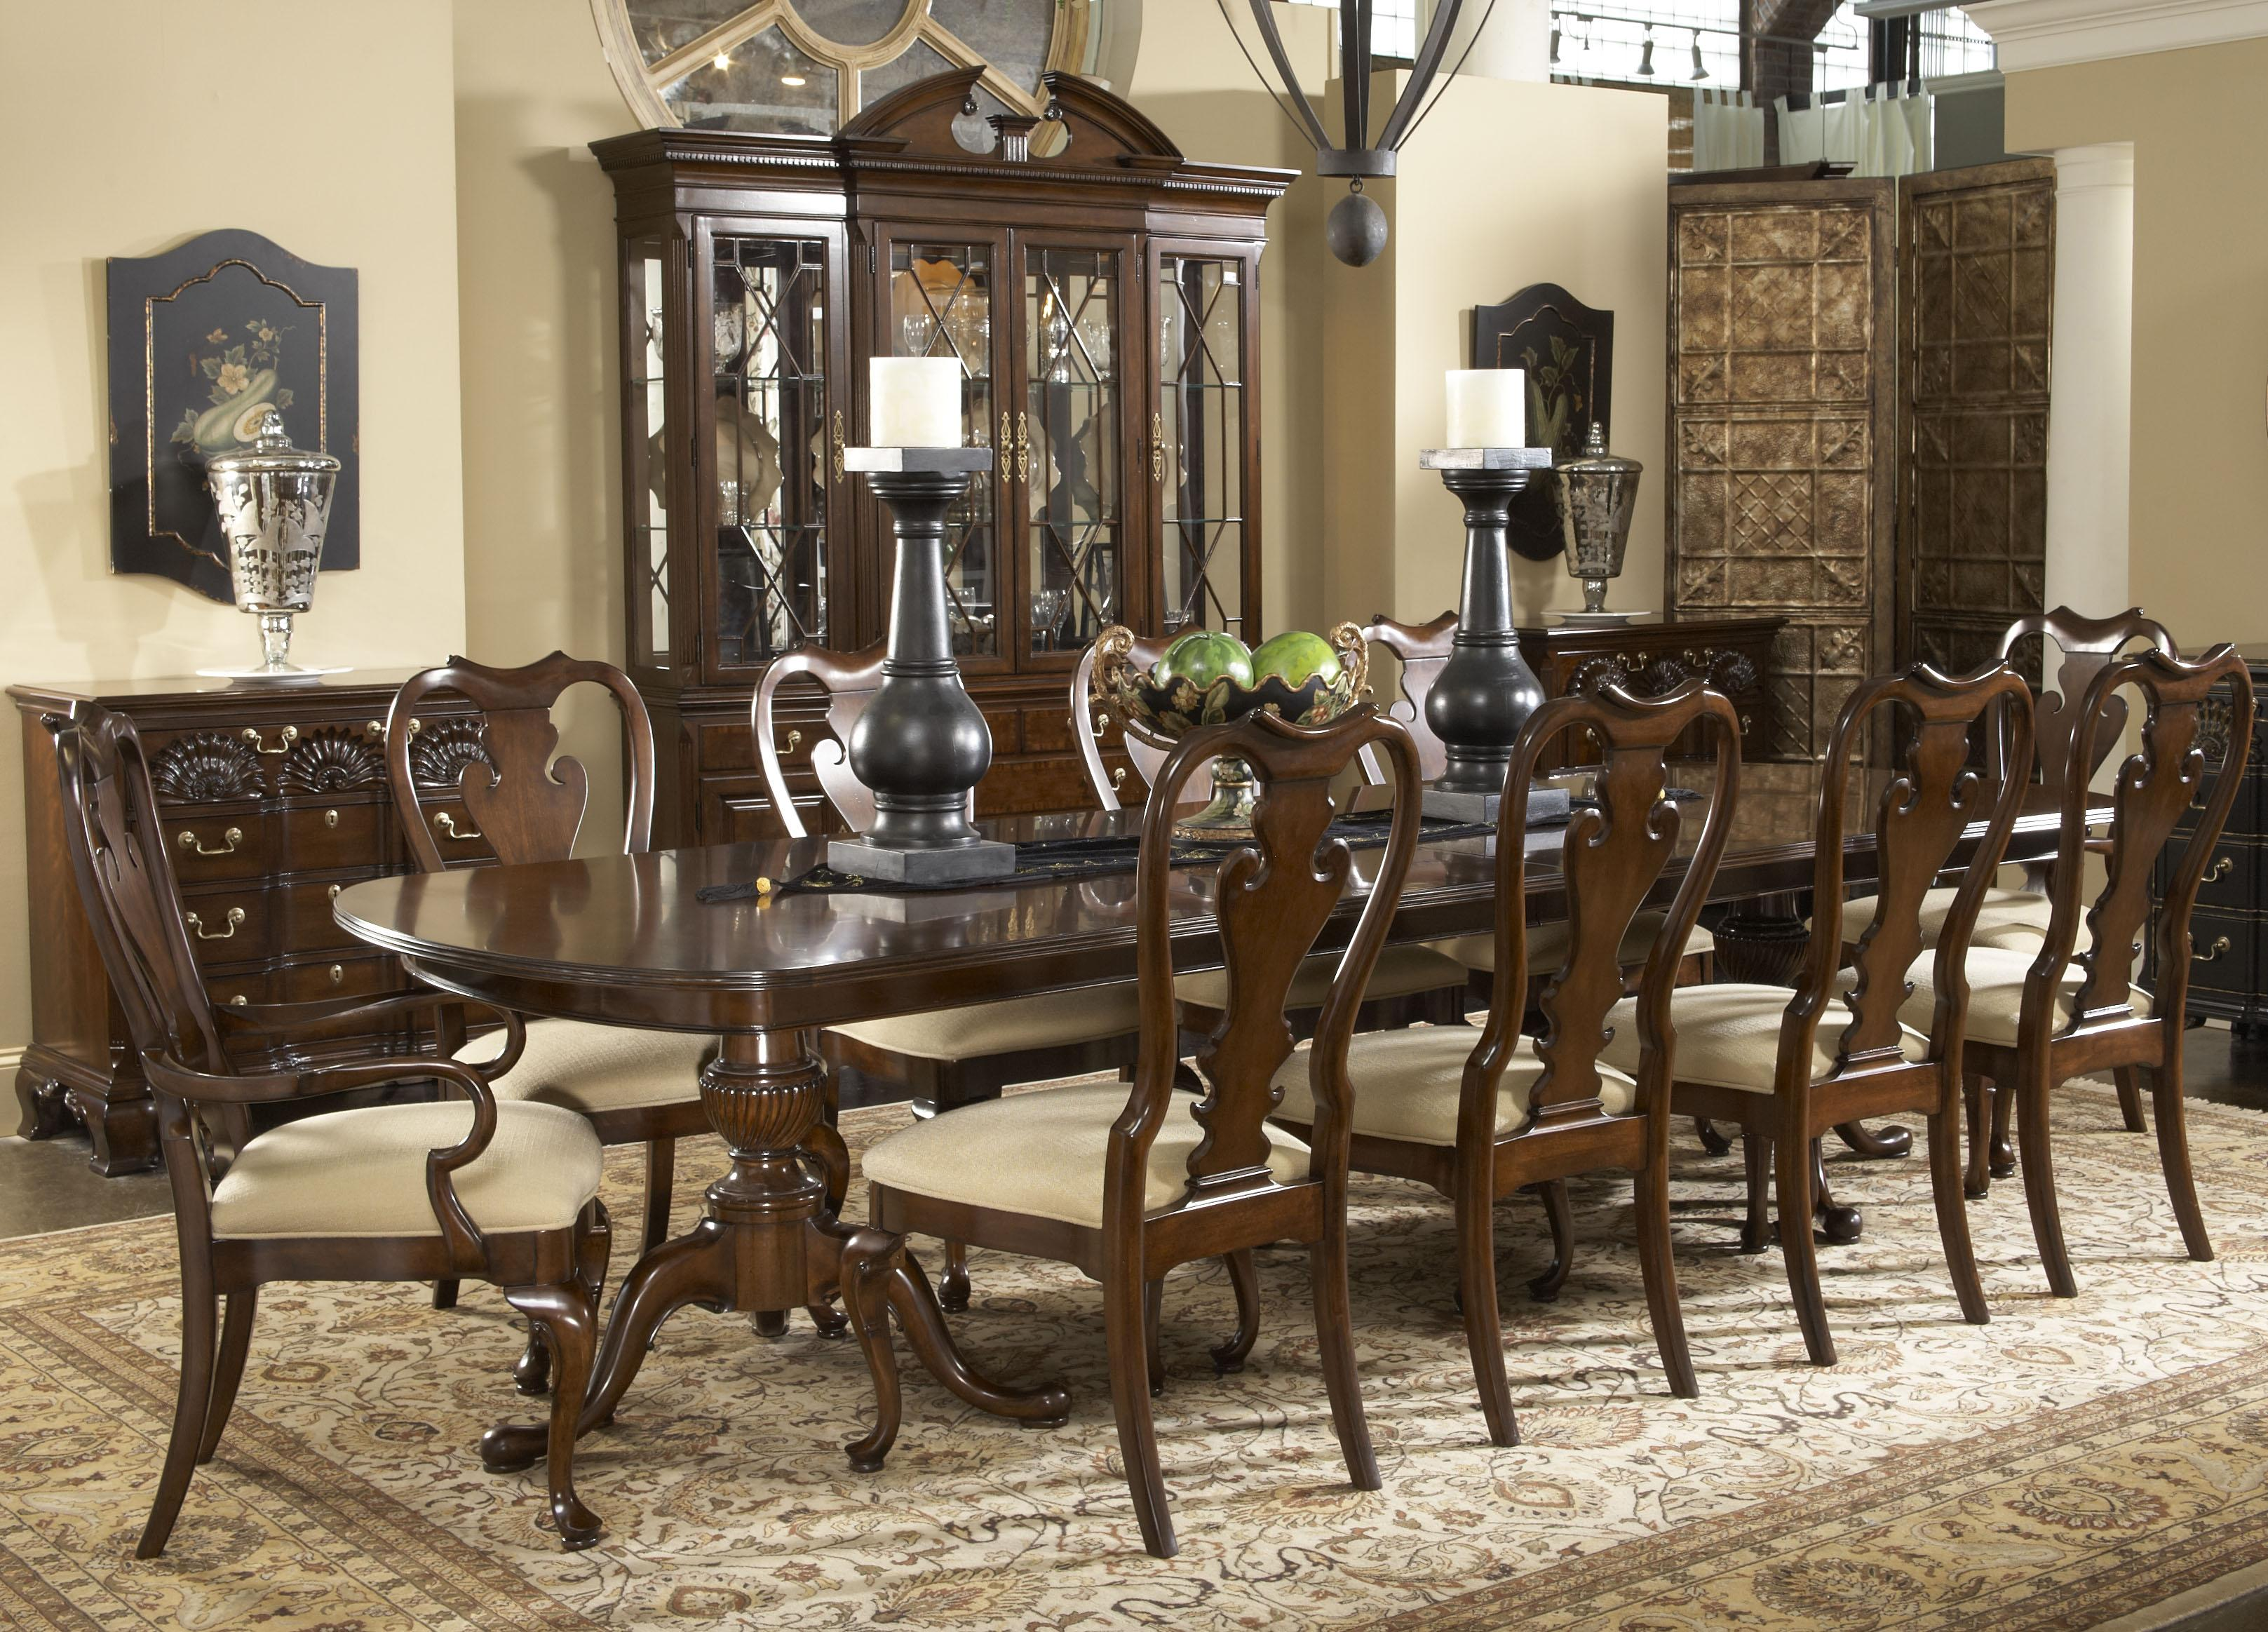 11 Piece Dining Room Set Homesfeed: dining room sets